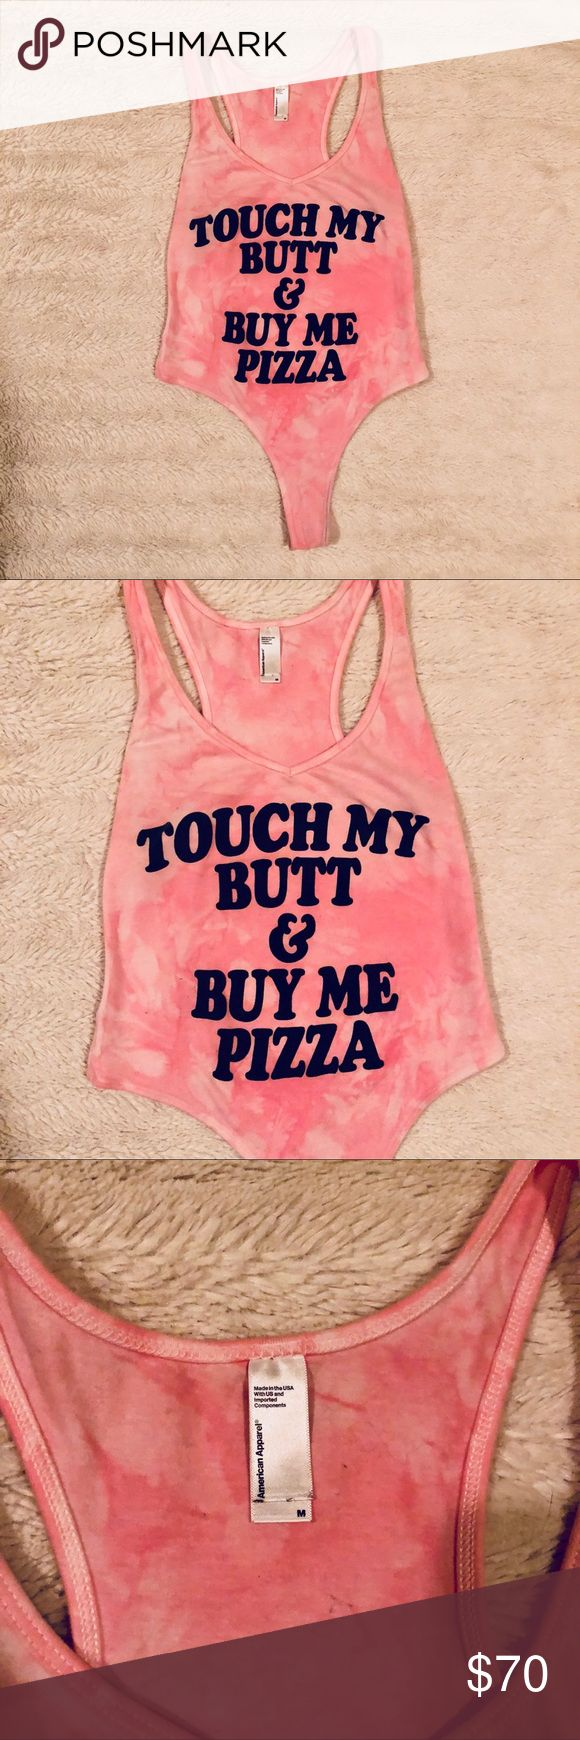 "⚡️LIMITED EDITION⚡️ American Apparel Bodysuit Limited edition ""touch my butt and buy me pizza"" American Apparel thong Bodysuit.  Definitely best with high wasted pants or shorts.  Worn once for a party and once on a night out.  Washed thoroughly of course.  Please lmk if you have questions! 💖 American Apparel Tops Tank Tops"